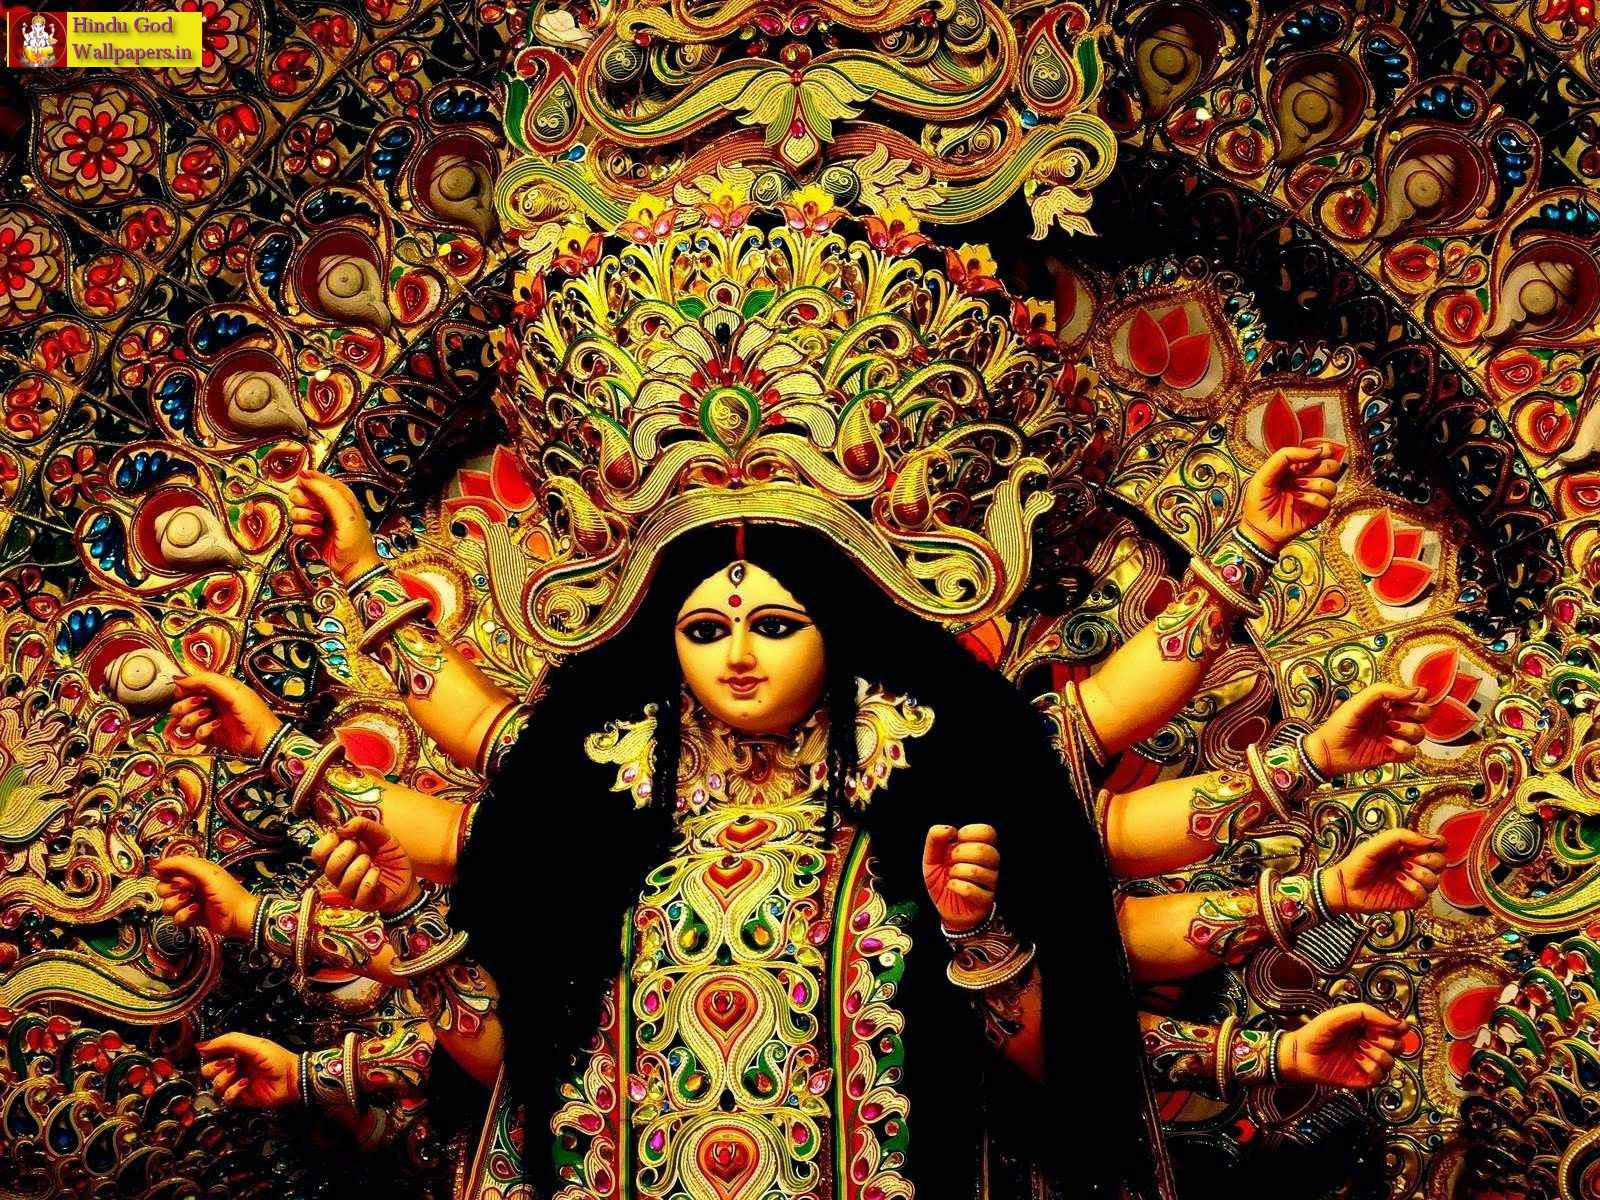 free download unique goddess durga wallpaper, god wallpaper, god